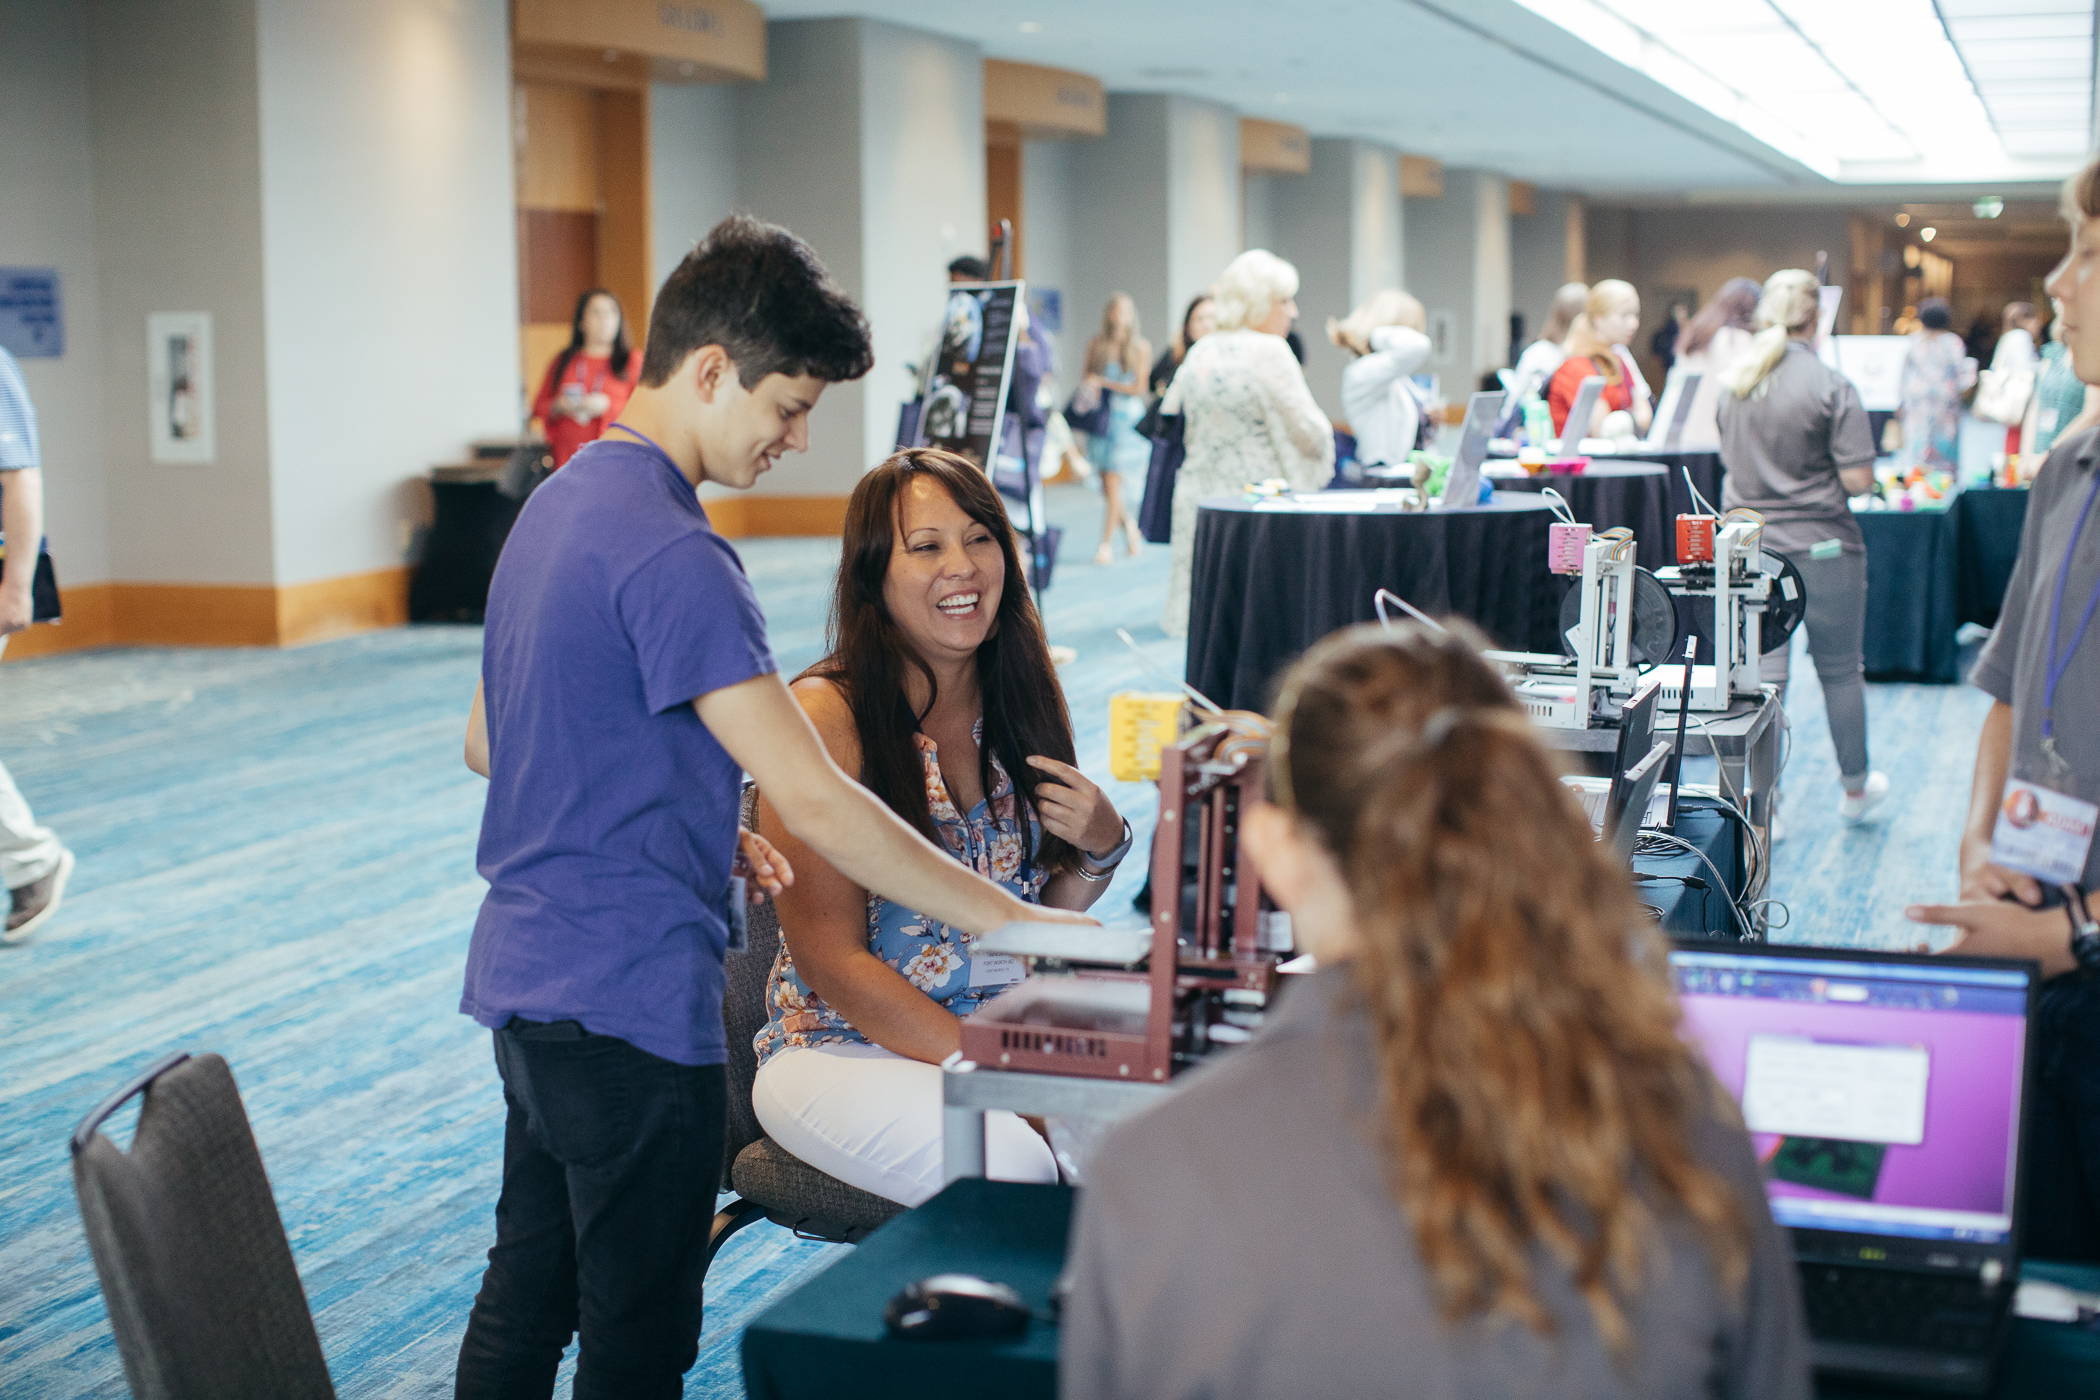 live event commercial photography brand storytelling for education florida conference photographer ©2018abigailbobophotography-58.jpg